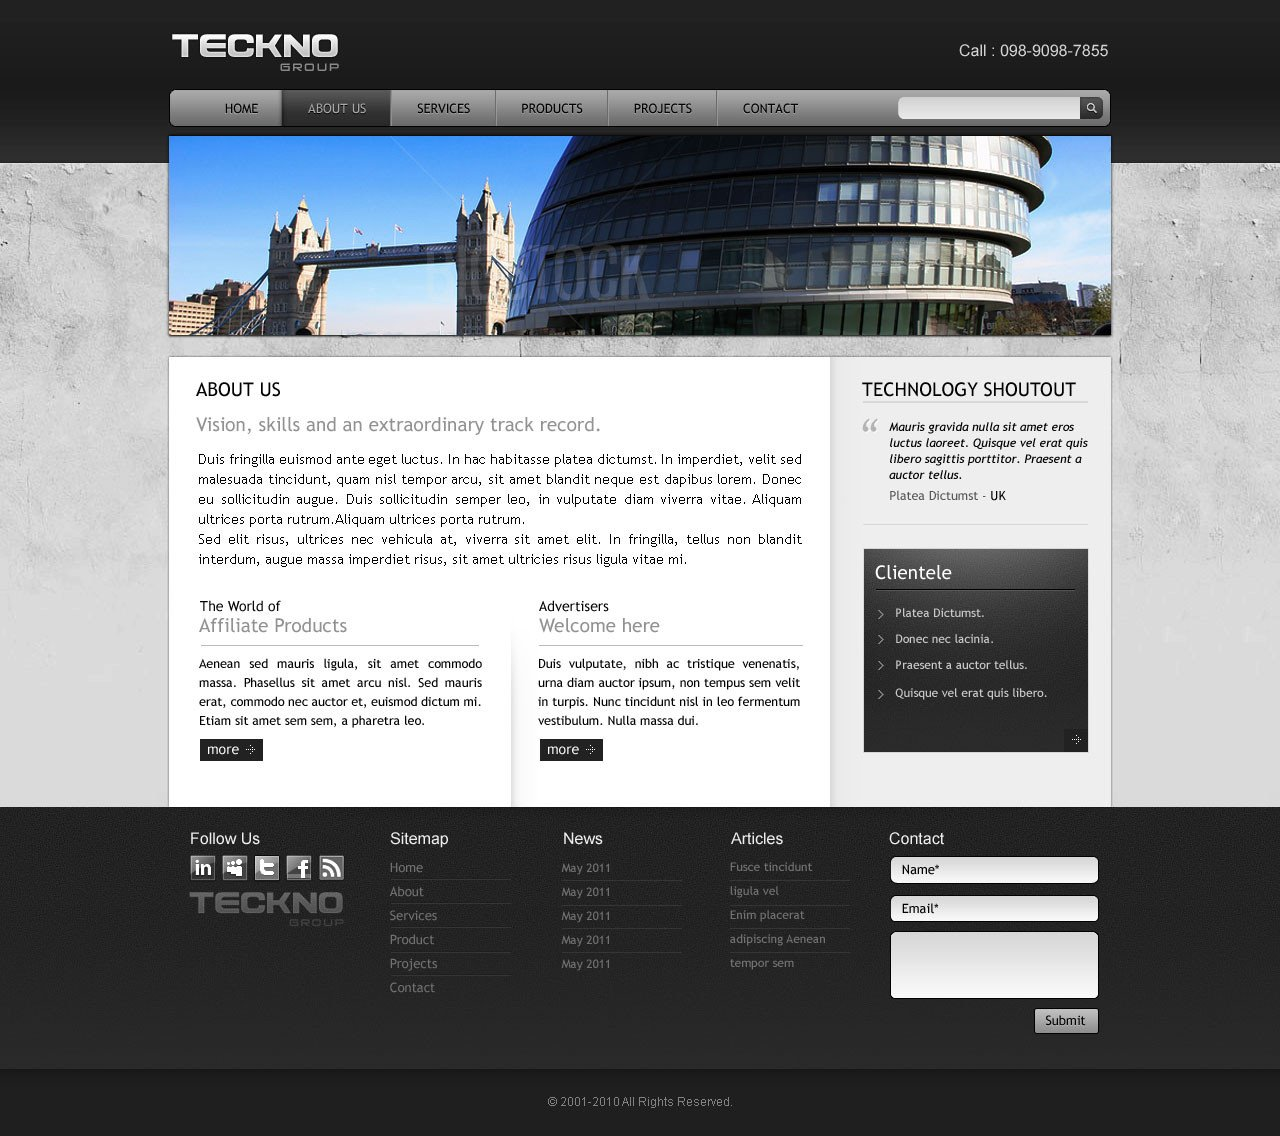 Free Professional Dreamweaver Templates Template 3 Industrial Website Overview